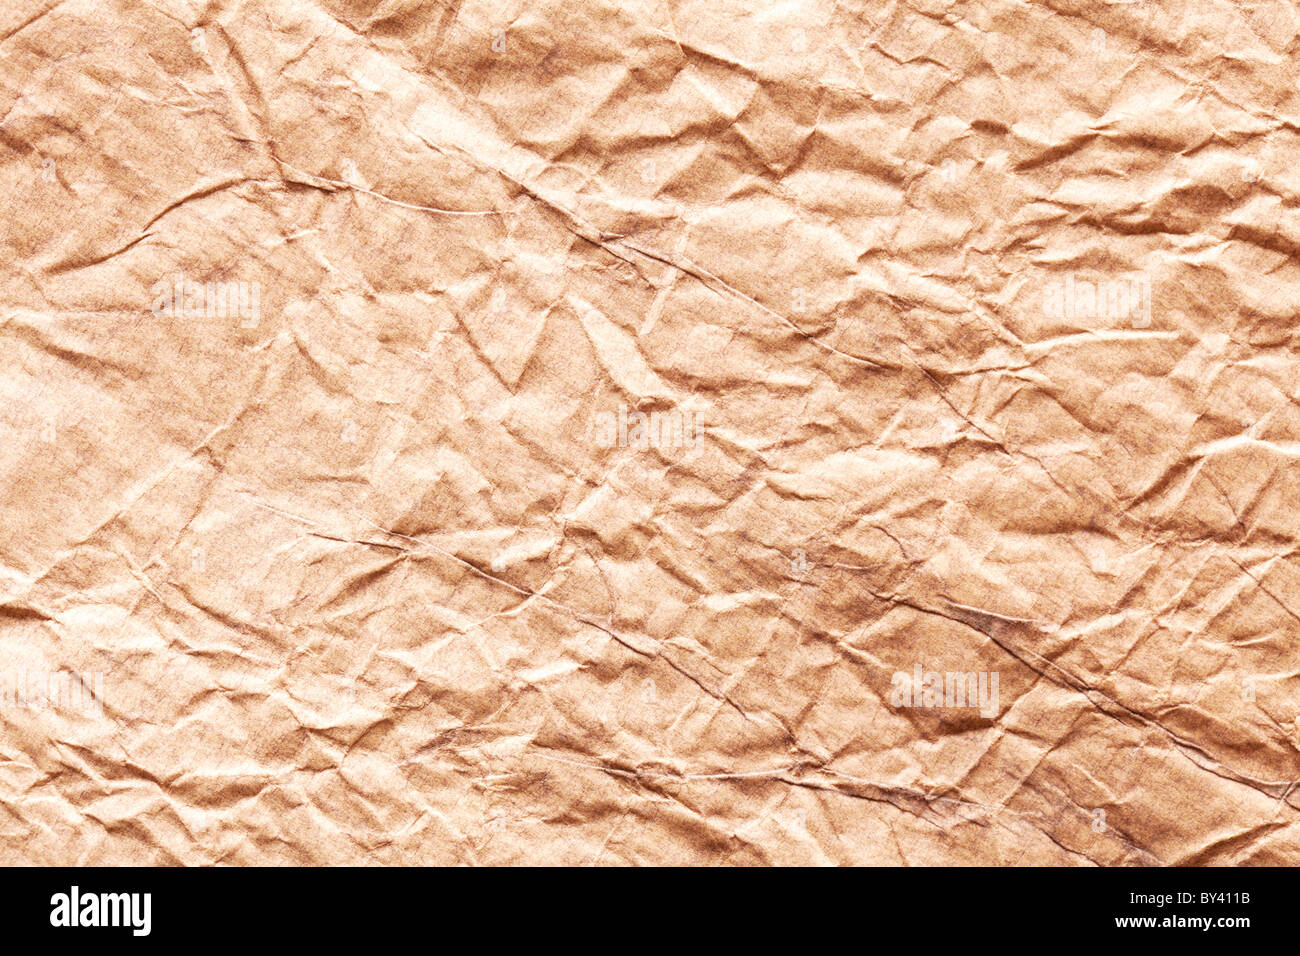 Image texture of crumpled brown paper. - Stock Image